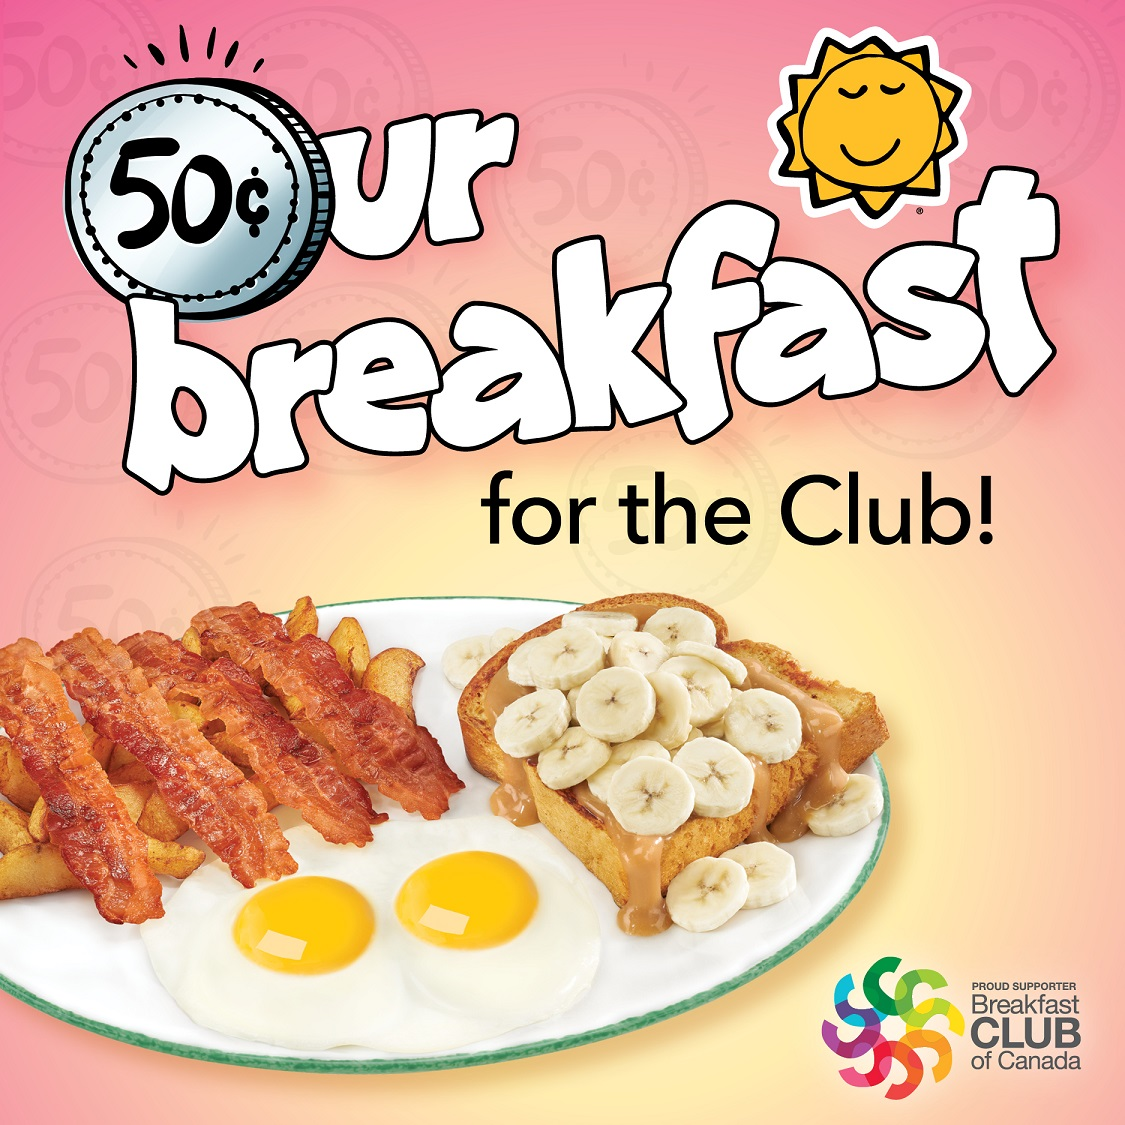 Cora Breakfast and Lunch dedicates a dish to Breakfast Club of Canada